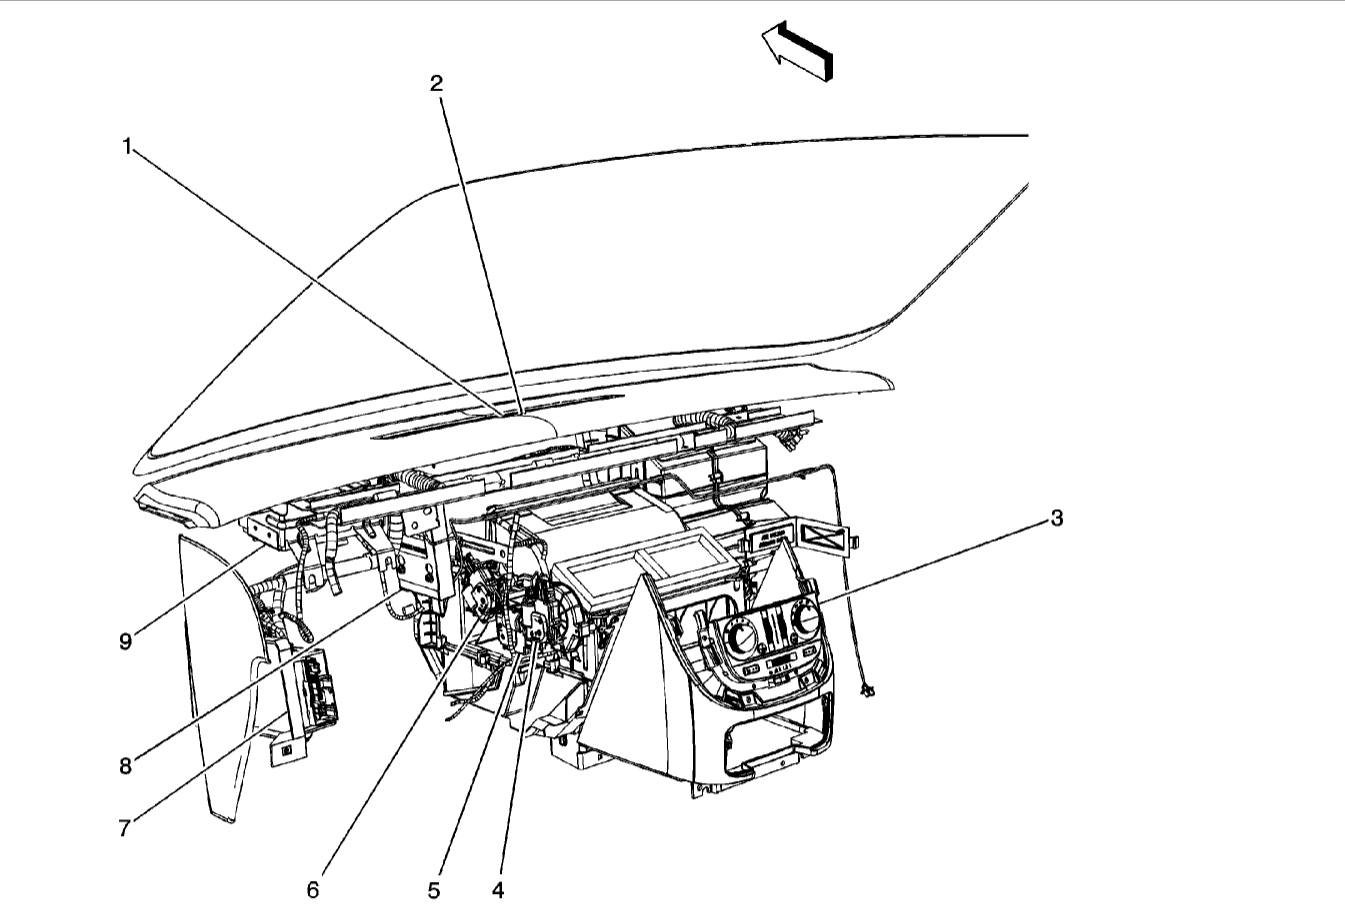 hight resolution of 2006 pontiac montana engine diagram wiring library 2006 pontiac montana engine diagram